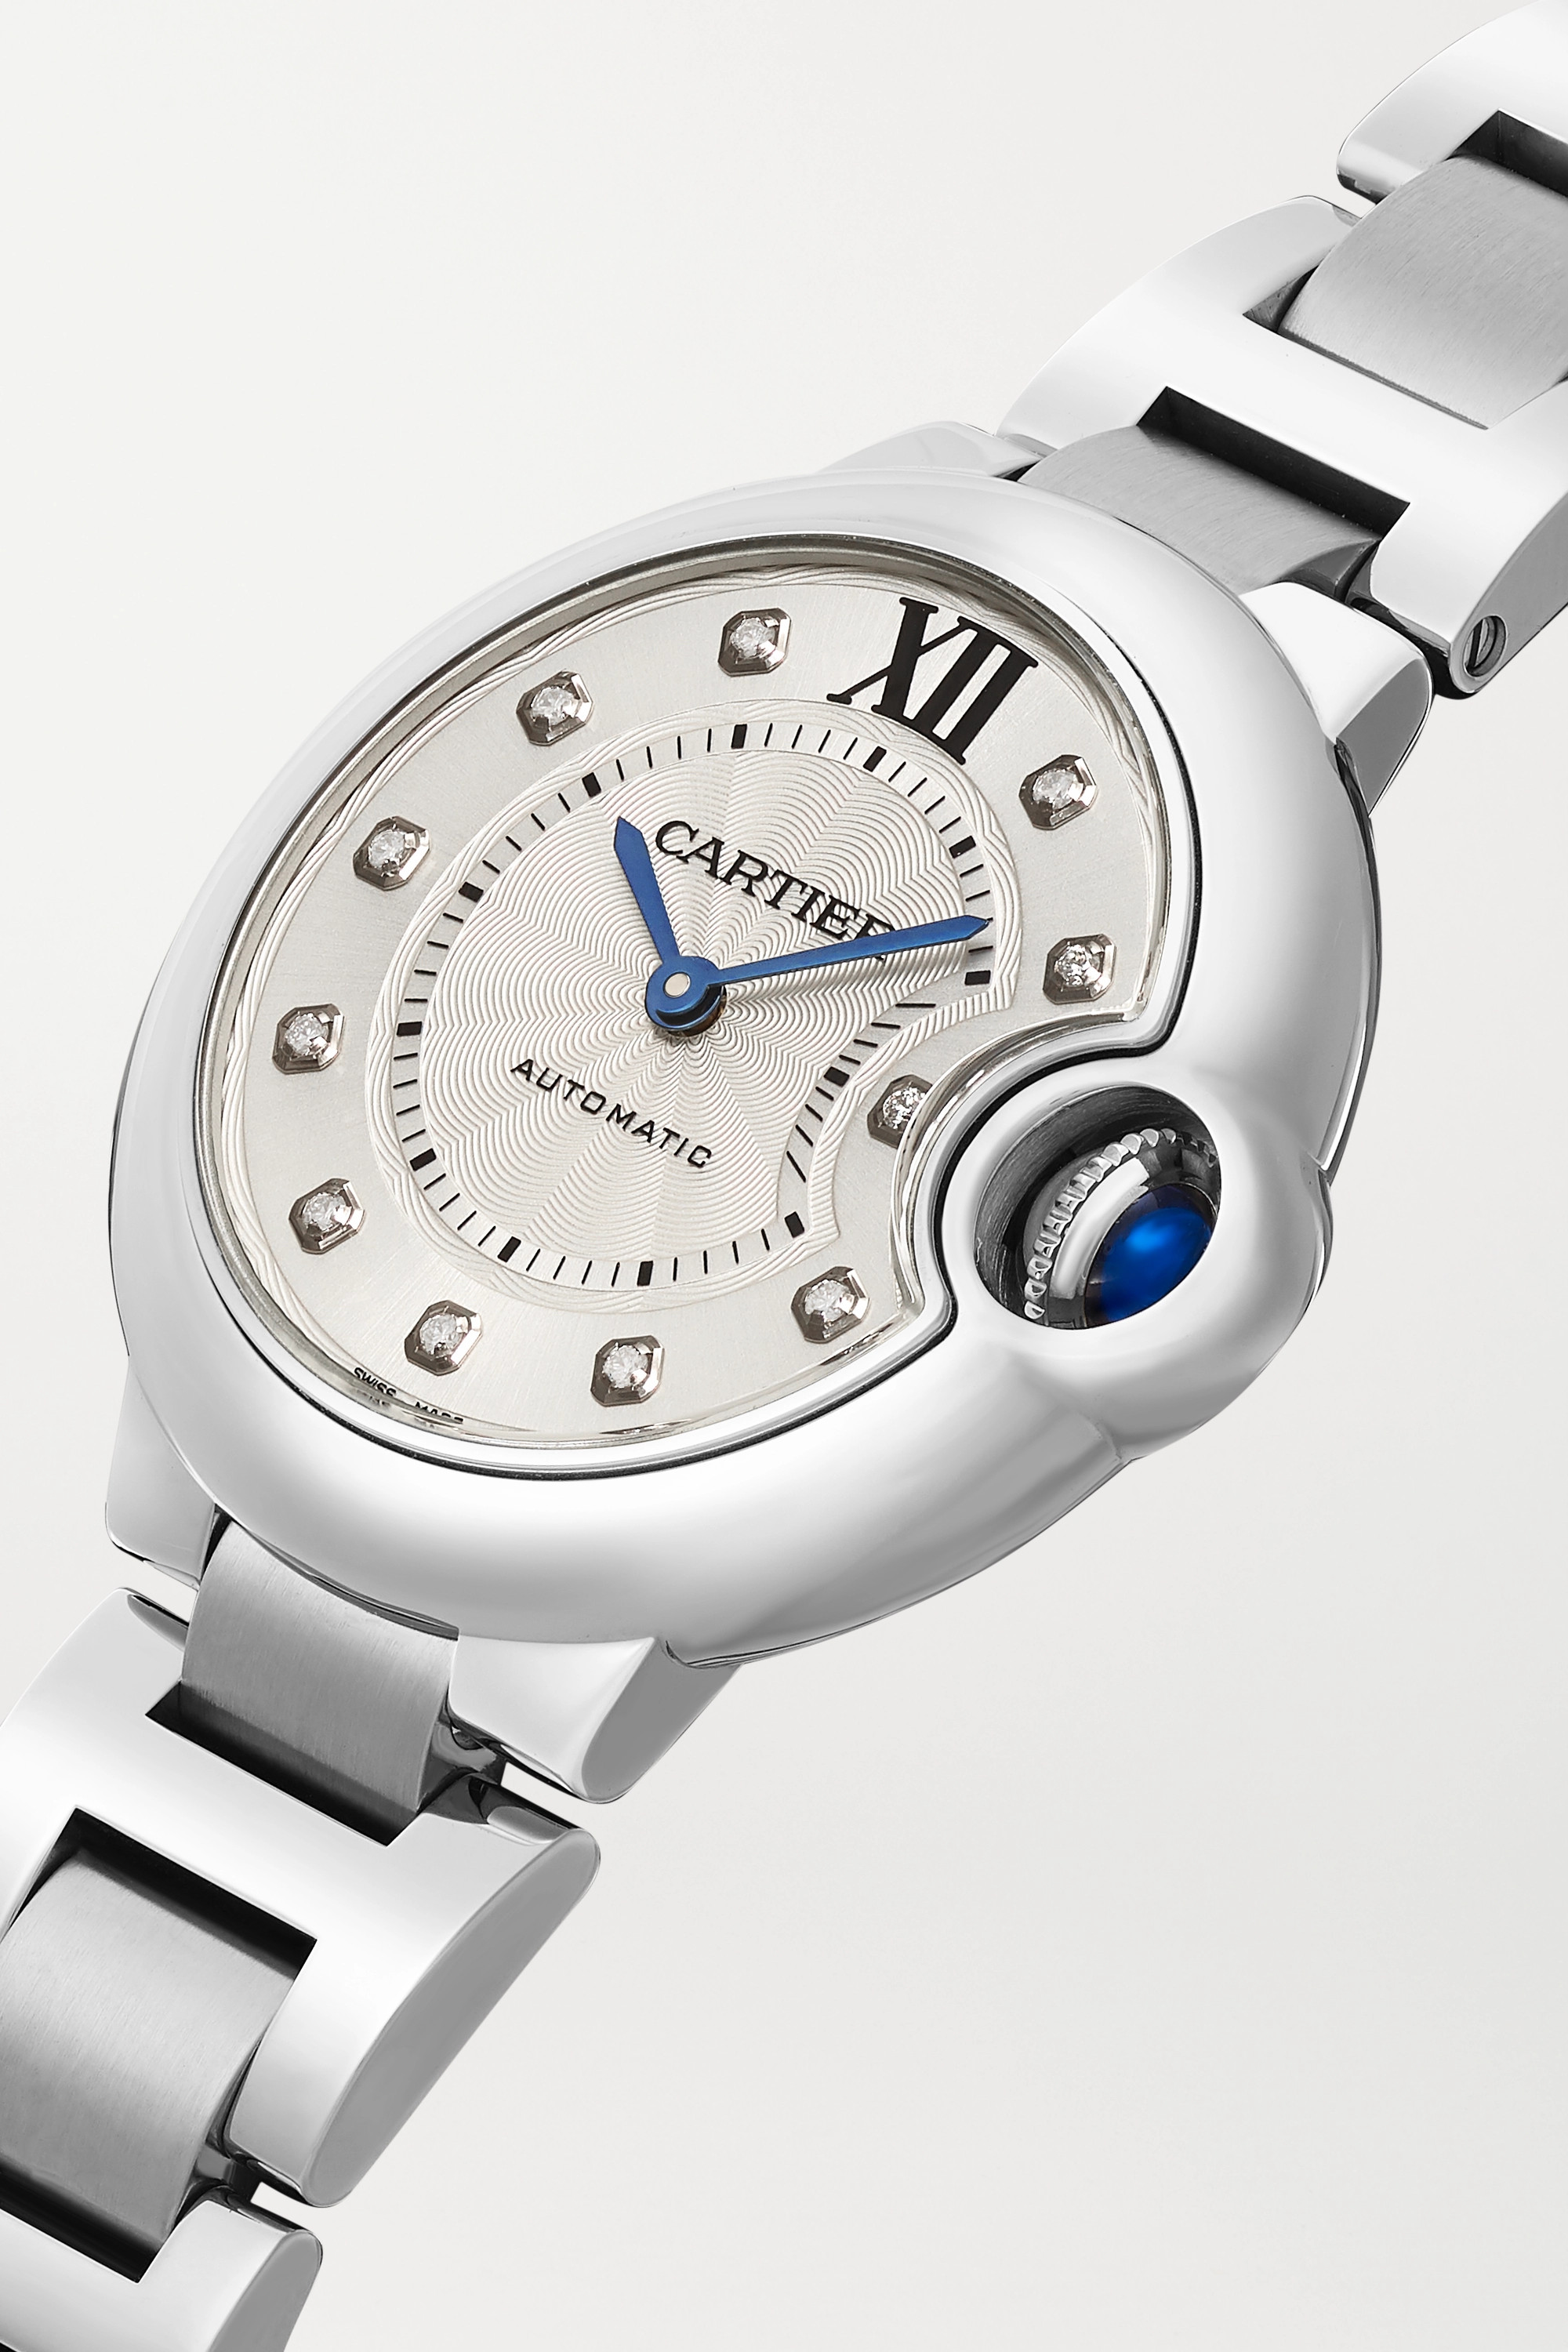 CARTIER Ballon Bleu de Cartier Automatic 33mm stainless steel and diamond watch